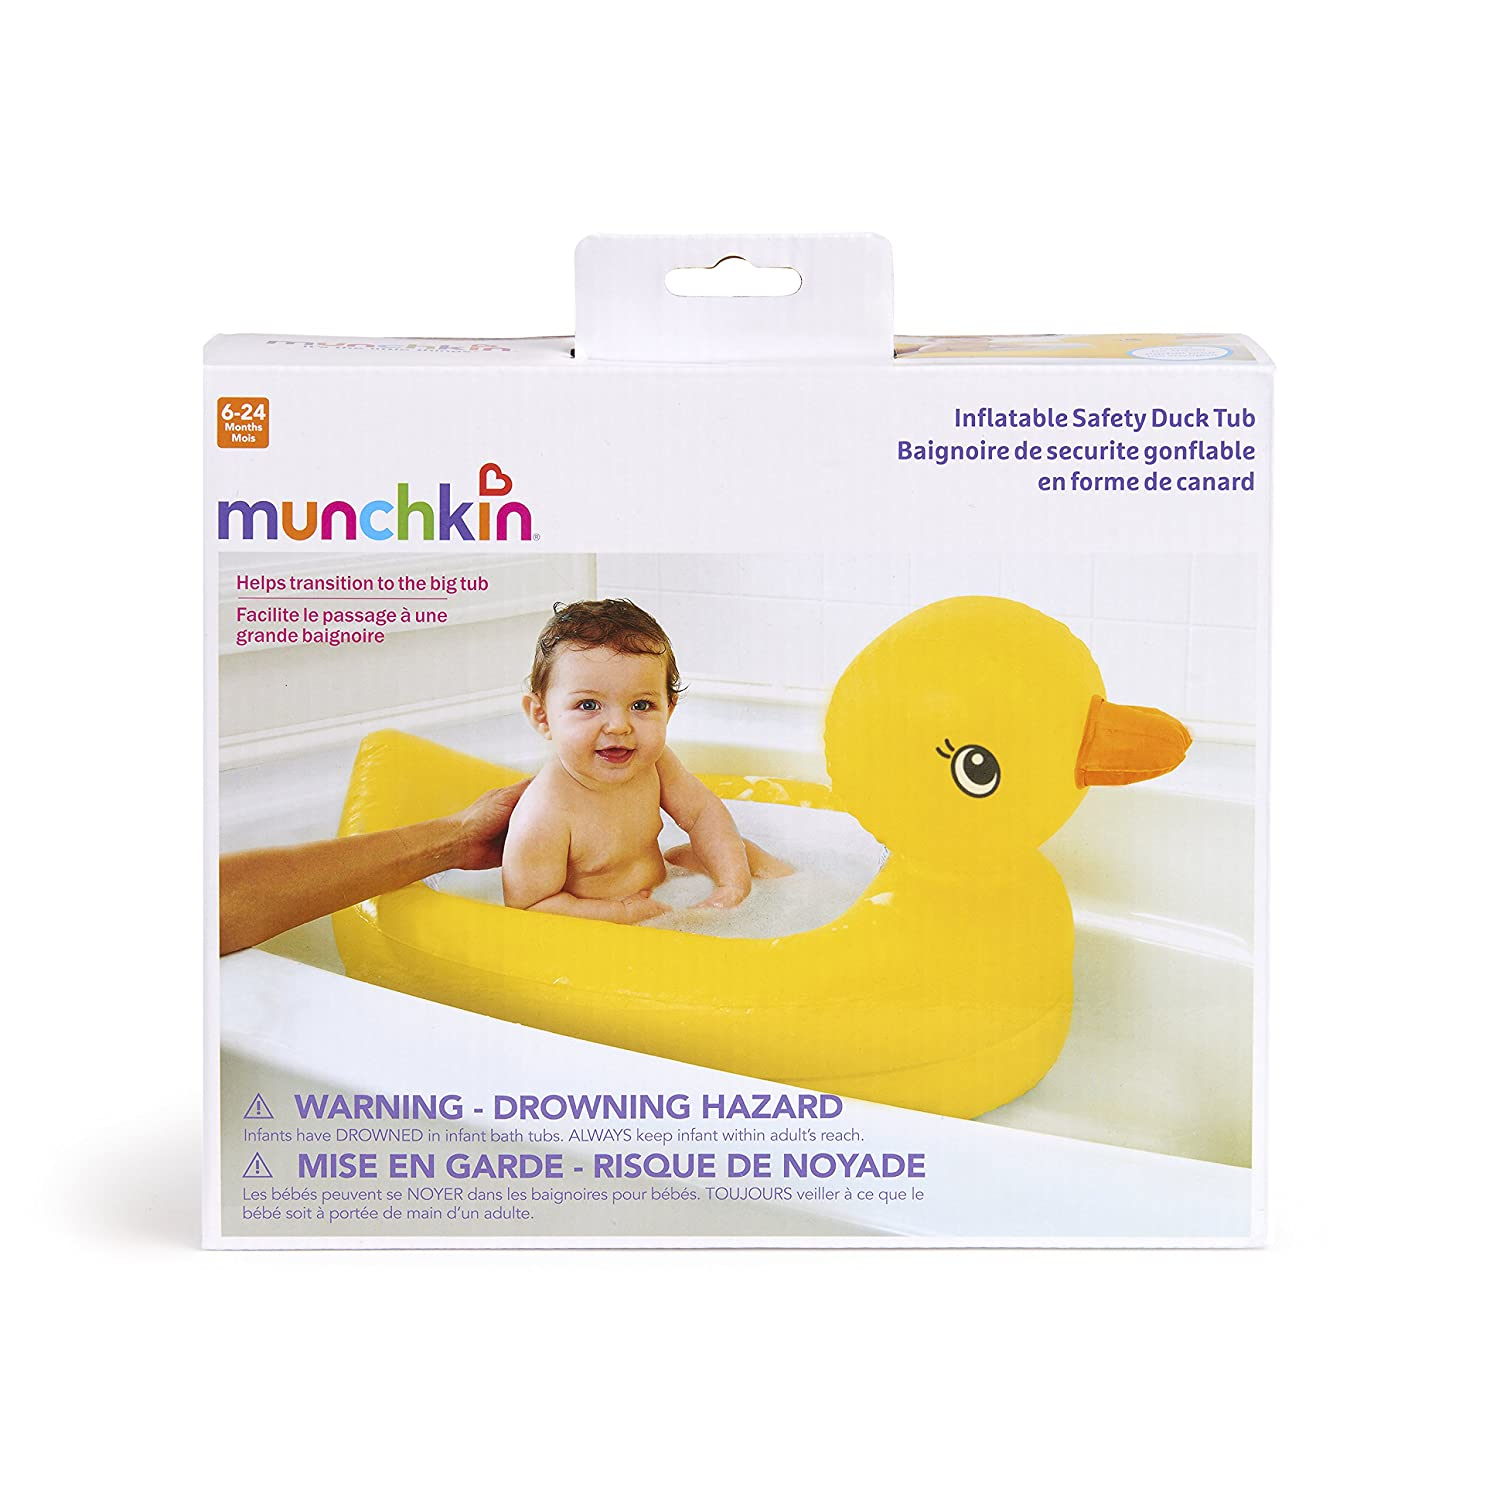 Buy Munchkin White Hot Inflatable Safety Duck Tub Online at Low ...